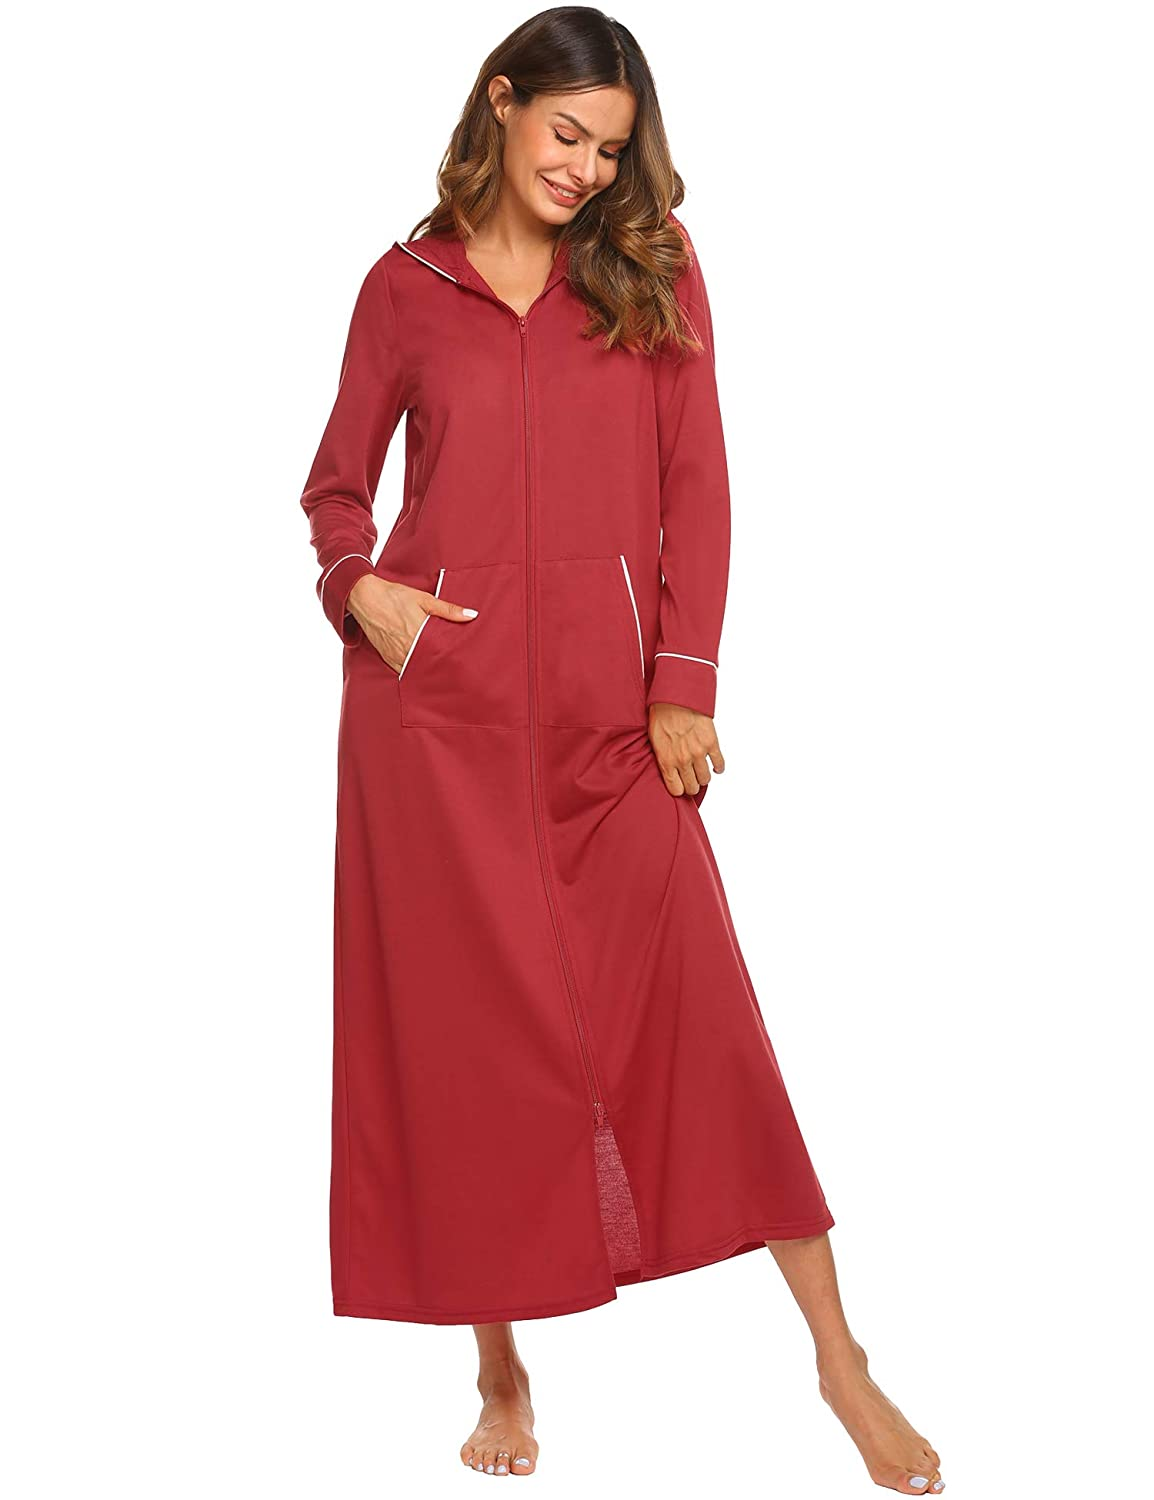 c84474d53c Ekouaer Hooded Zipper Robe Nightgowns Long Sleeve Cotton Sleepwear for Women  Plus Size S-2XL at Amazon Women s Clothing store